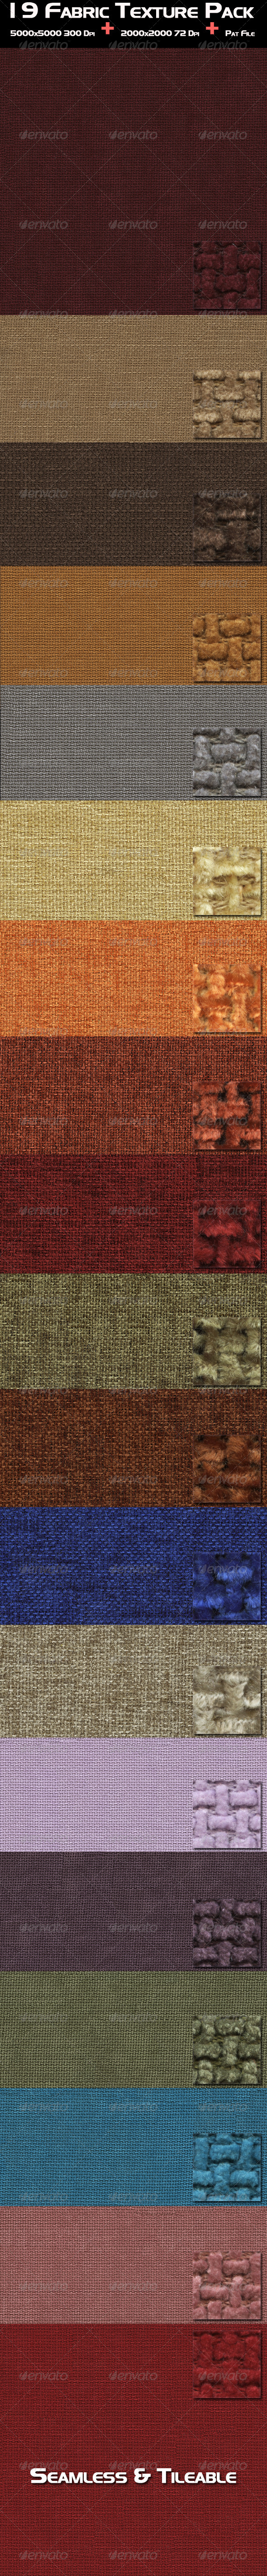 19 Fabric Texture Pack - Fabric Textures